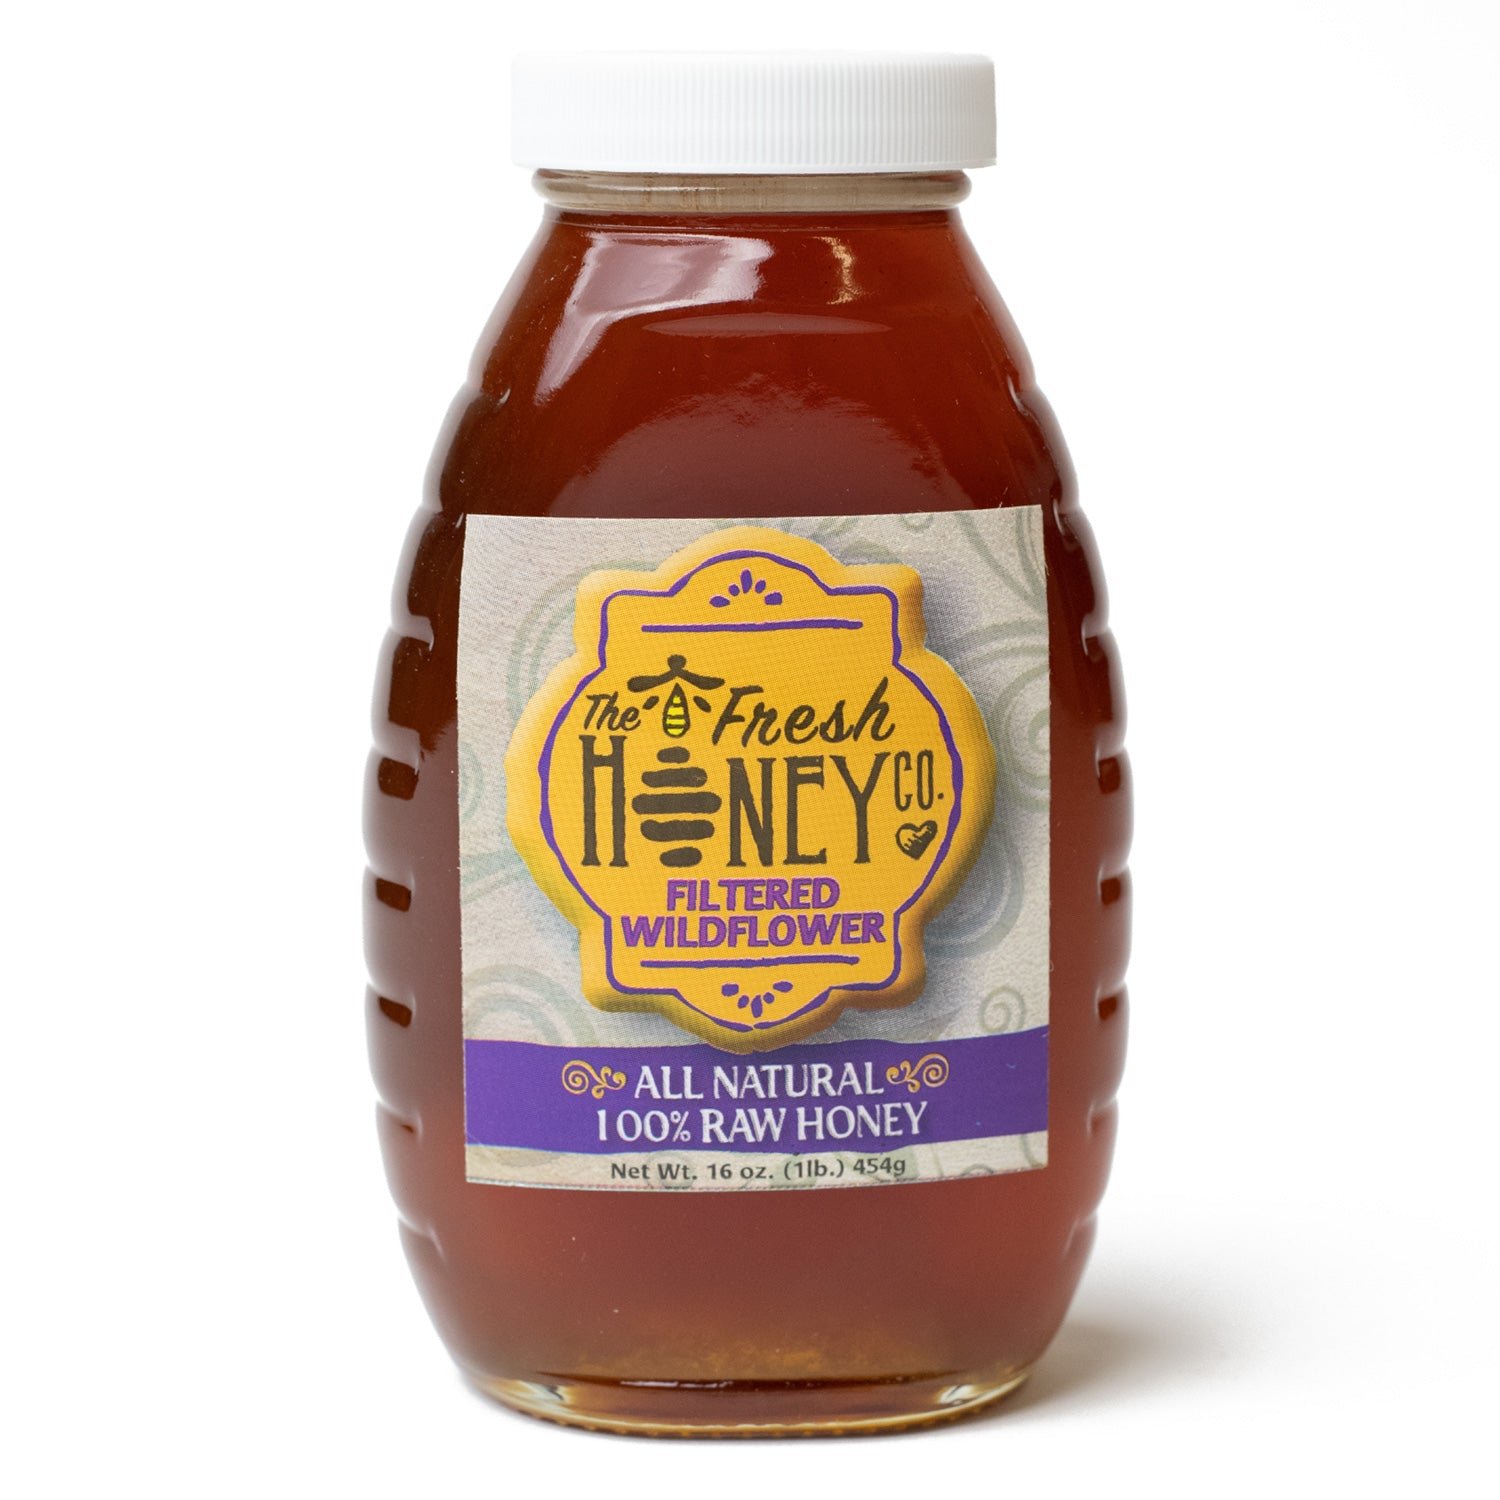 Filtered Wildflower Honey (Fresh Chile Company)